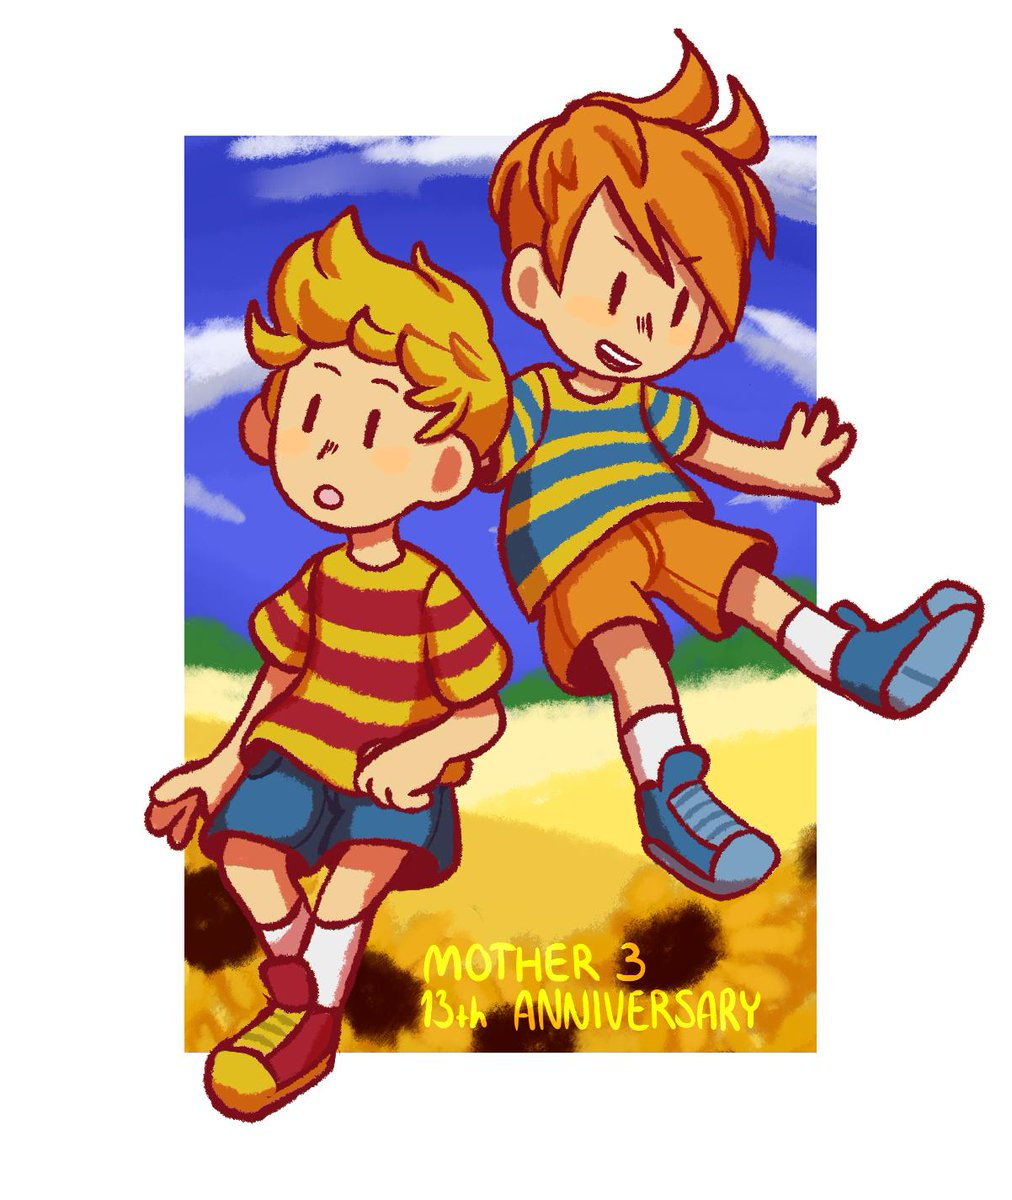 mother3_13th hashtag on Twitter